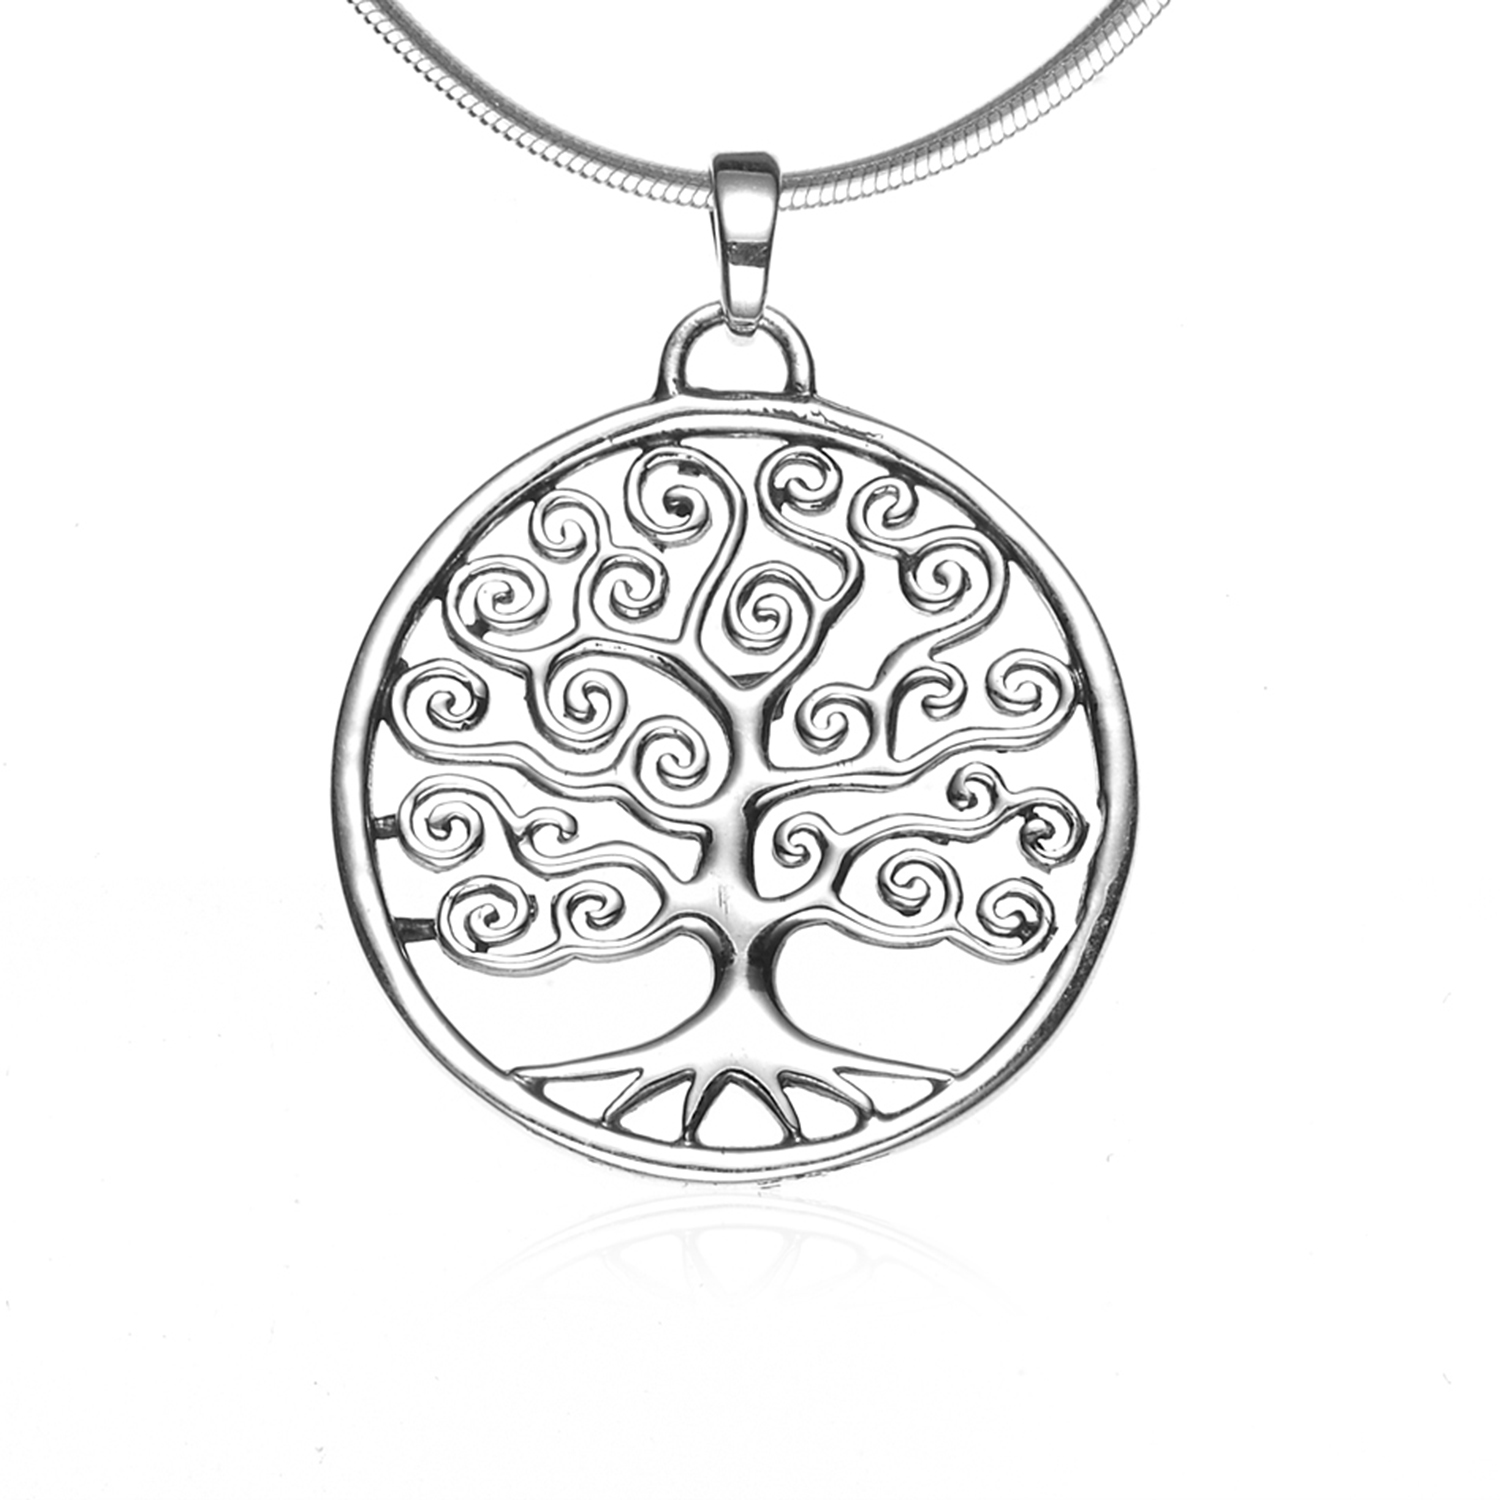 925 Sterling Silver Filigree Tree of Life Round Swirl Pendant Necklace, 18 inches - Nickel Free